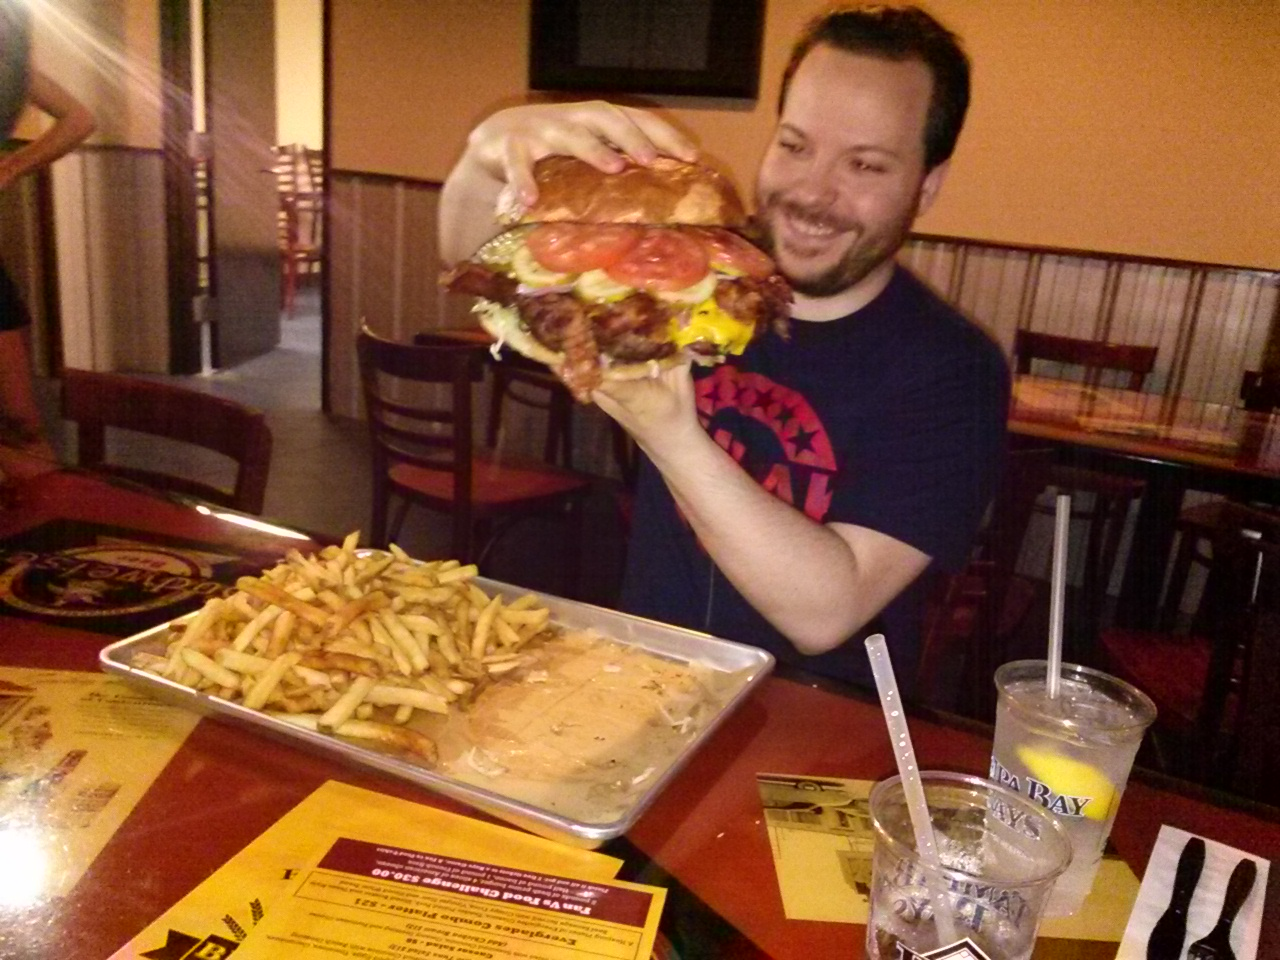 The Rays' 4-pound burger is impossible to eat